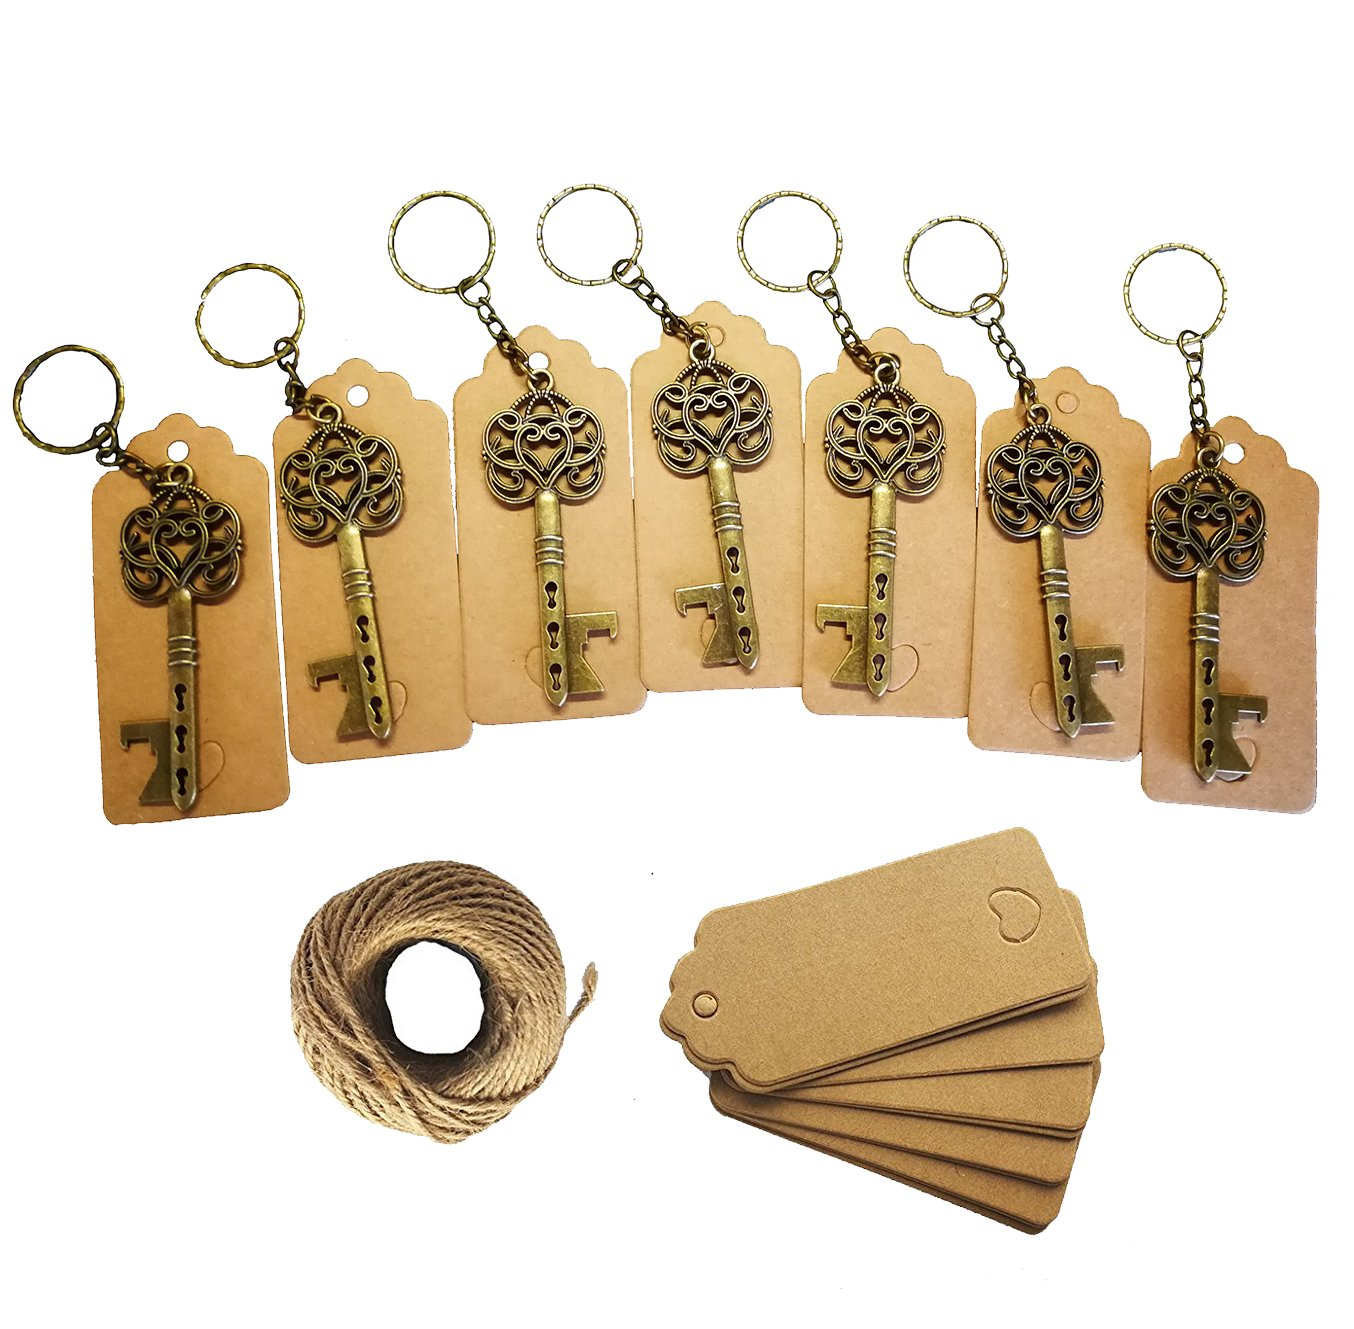 50Pcs Wedding Favors Skeleton Key Bottle Opener with 50pcs Escort Card Tag and Twine for Guests Party Favors Rustic